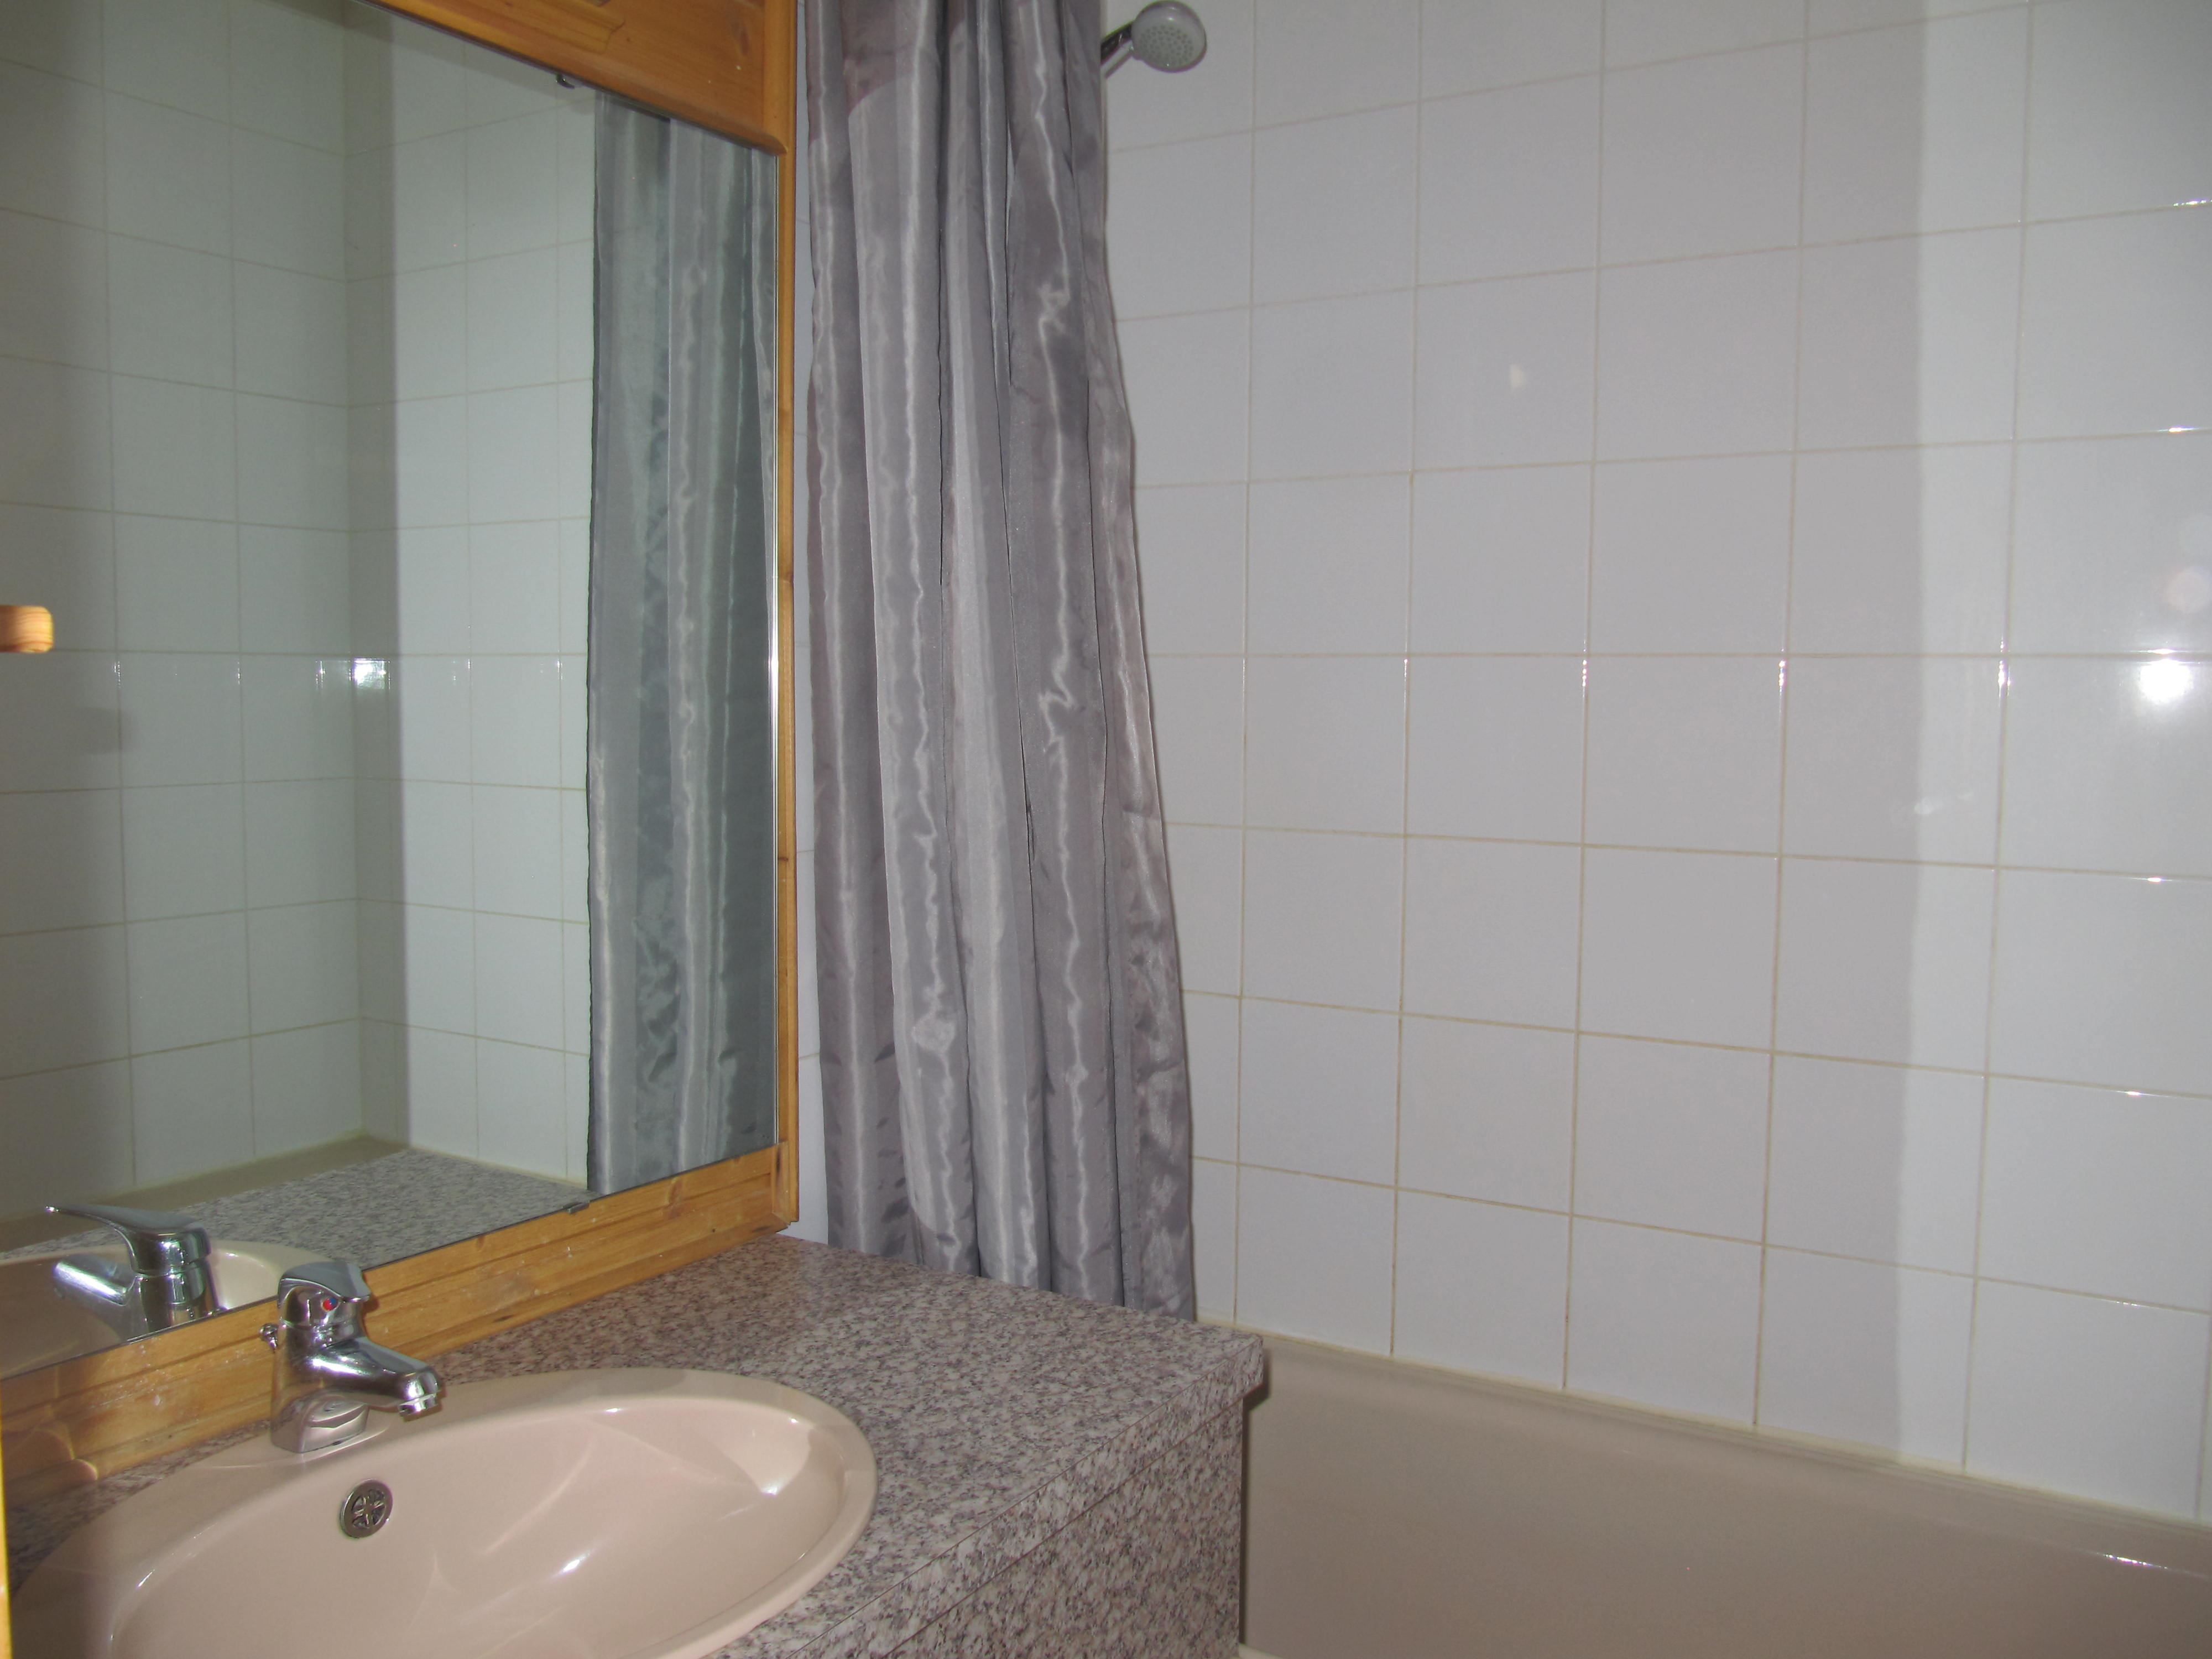 ETERLOUS 20-21 / APARTMENT 5 ROOMS - 8 PERSONS - 3 SILVER SNOWFLAKES - MA CLE IMMO